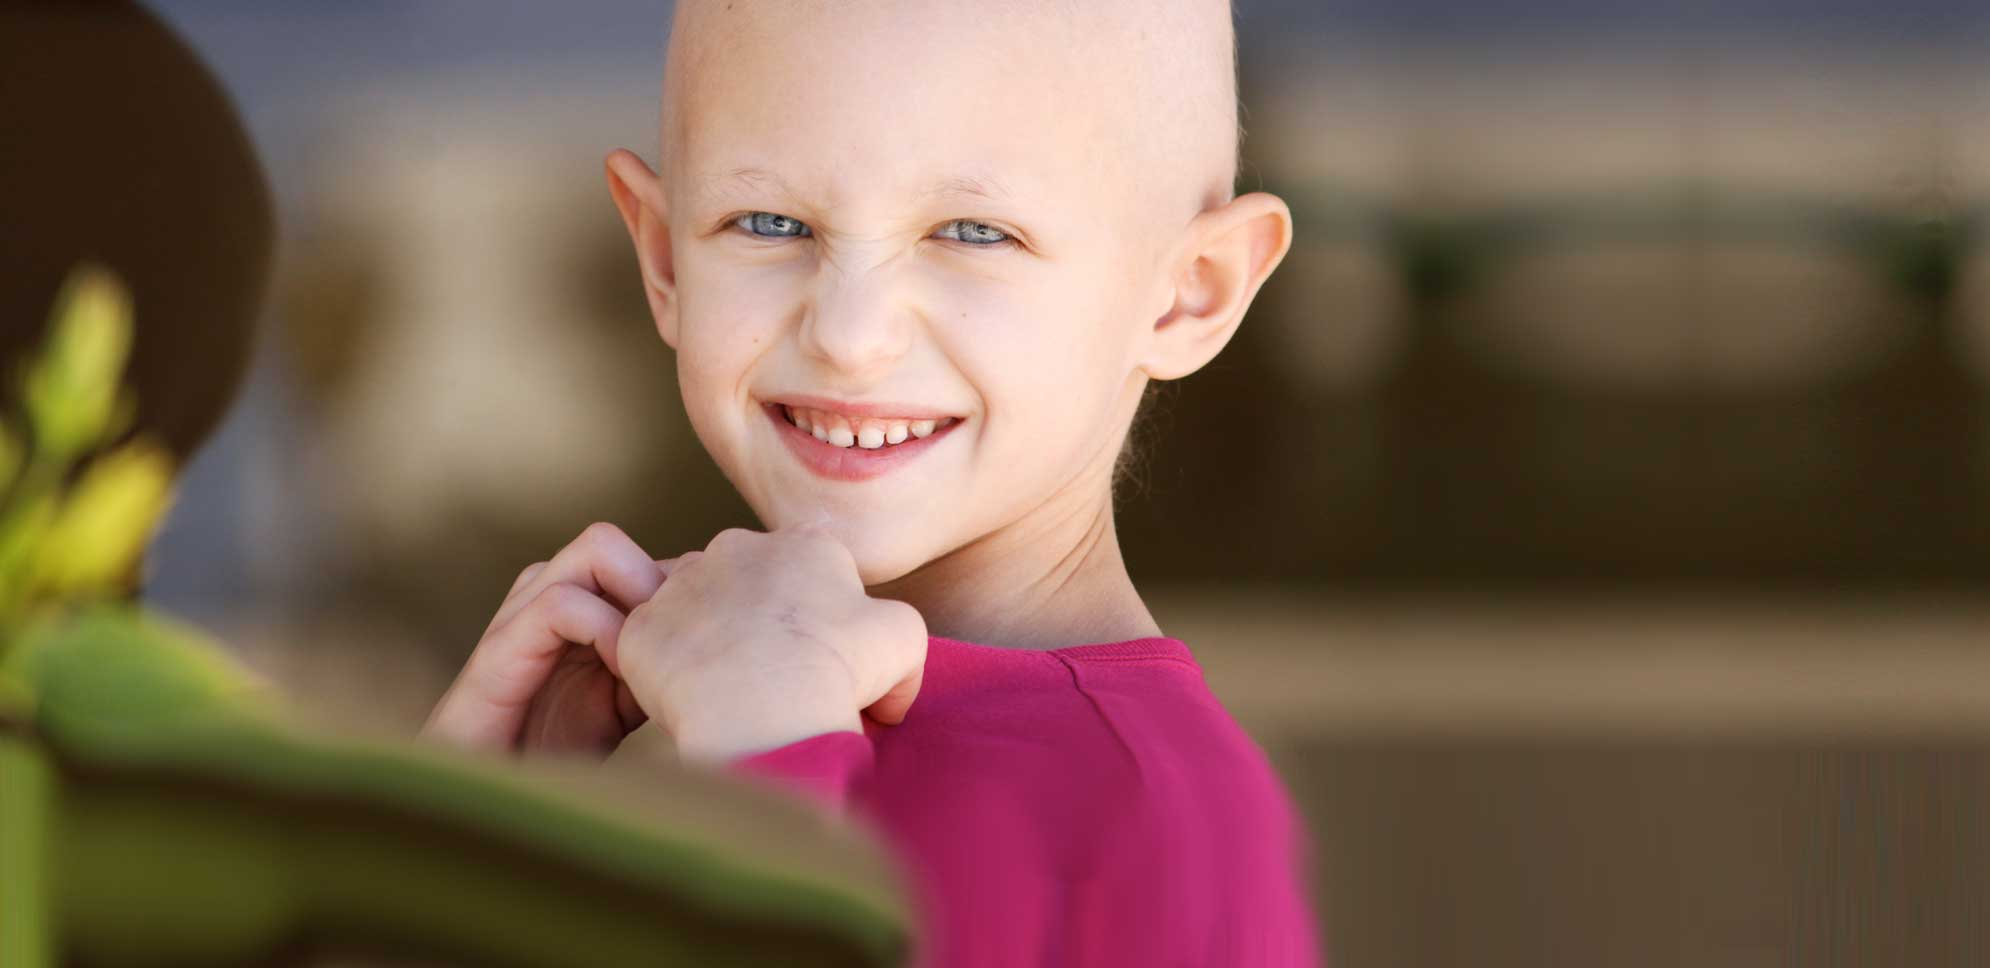 families of children with cancer When a child has cancer, every member of the family needs support parents often feel shocked and overwhelmed following their child's cancer diagnosis we share tips to help you talk with children of all ages about cancer answers to commonly asked questions from parents and children are also.